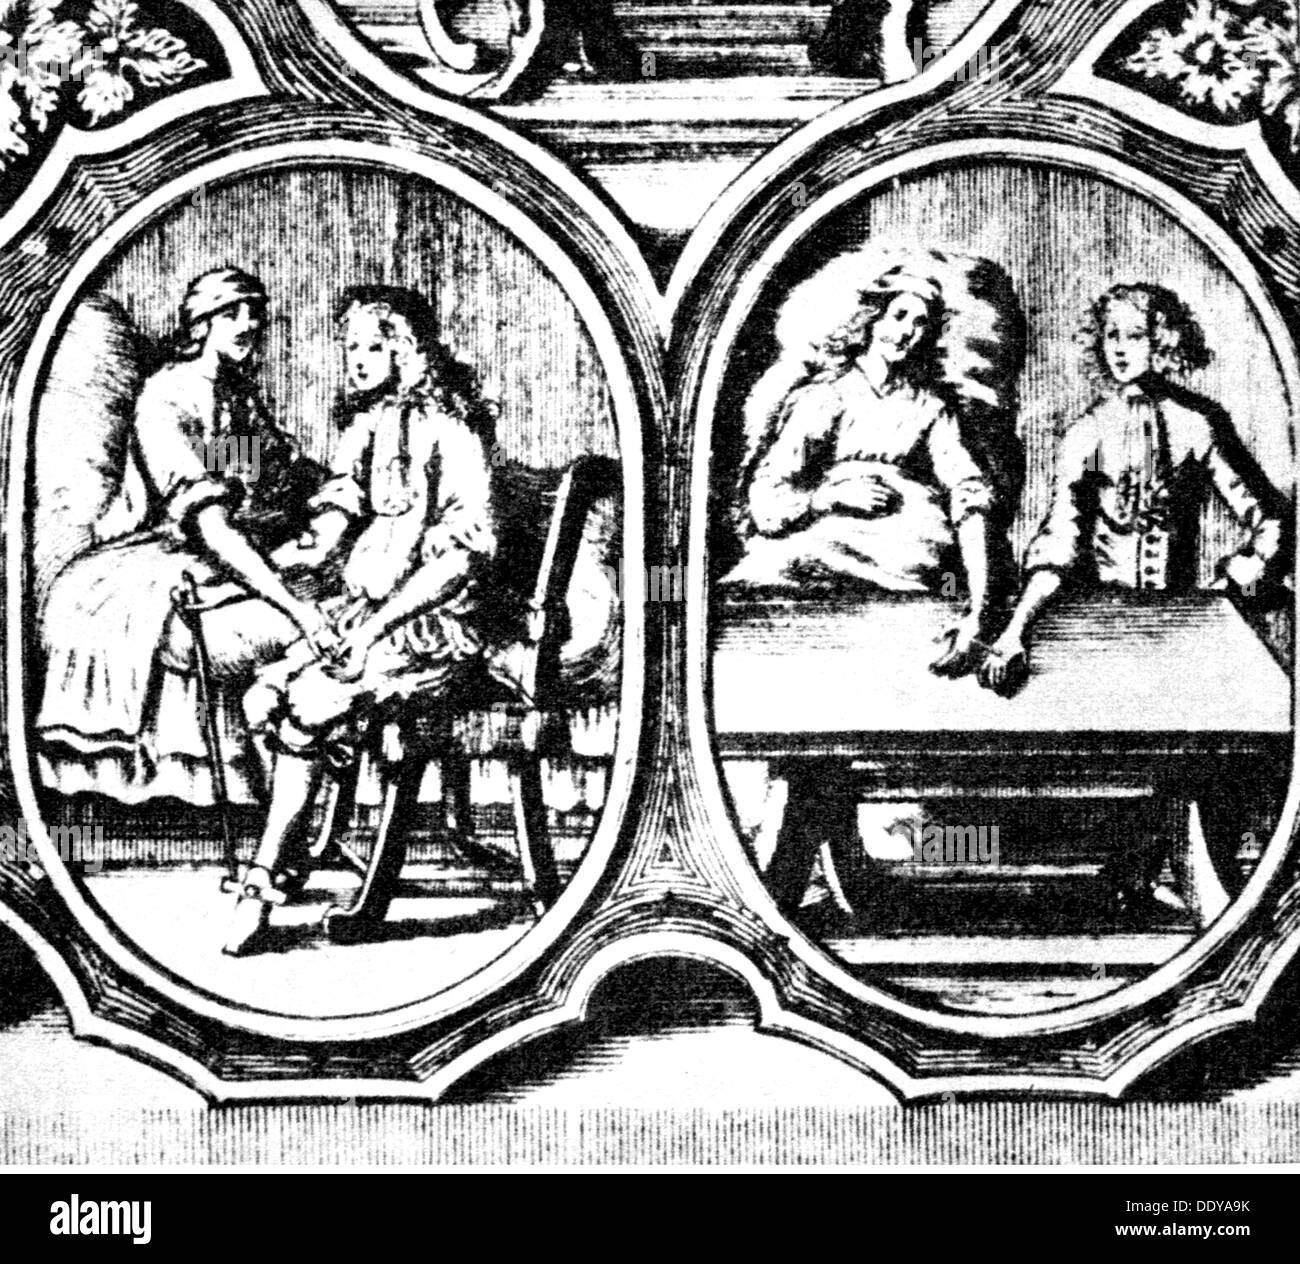 medicine, treatment, transfusion, different possibilities of blood transfusion, after Georg Abraham Mercklin (1644 - 1702), Nuremberg, copper engraving, 17th century, 17th century, graphic, graphics, half length, arm, arms, blood, taking of a blood sample, fasting blood collection, blood transfusion, blood transfusions, transfusion, transfusions, patient, patients, chair, chairs, table, tables, bed, beds, sick-bed, sickbed, sick-beds, sickbeds, sitting, sit, sick person, sick people, medicine, medicines, treatment, treatments, possibility, possibilitie, Artist's Copyright has not to be cleared - Stock Image